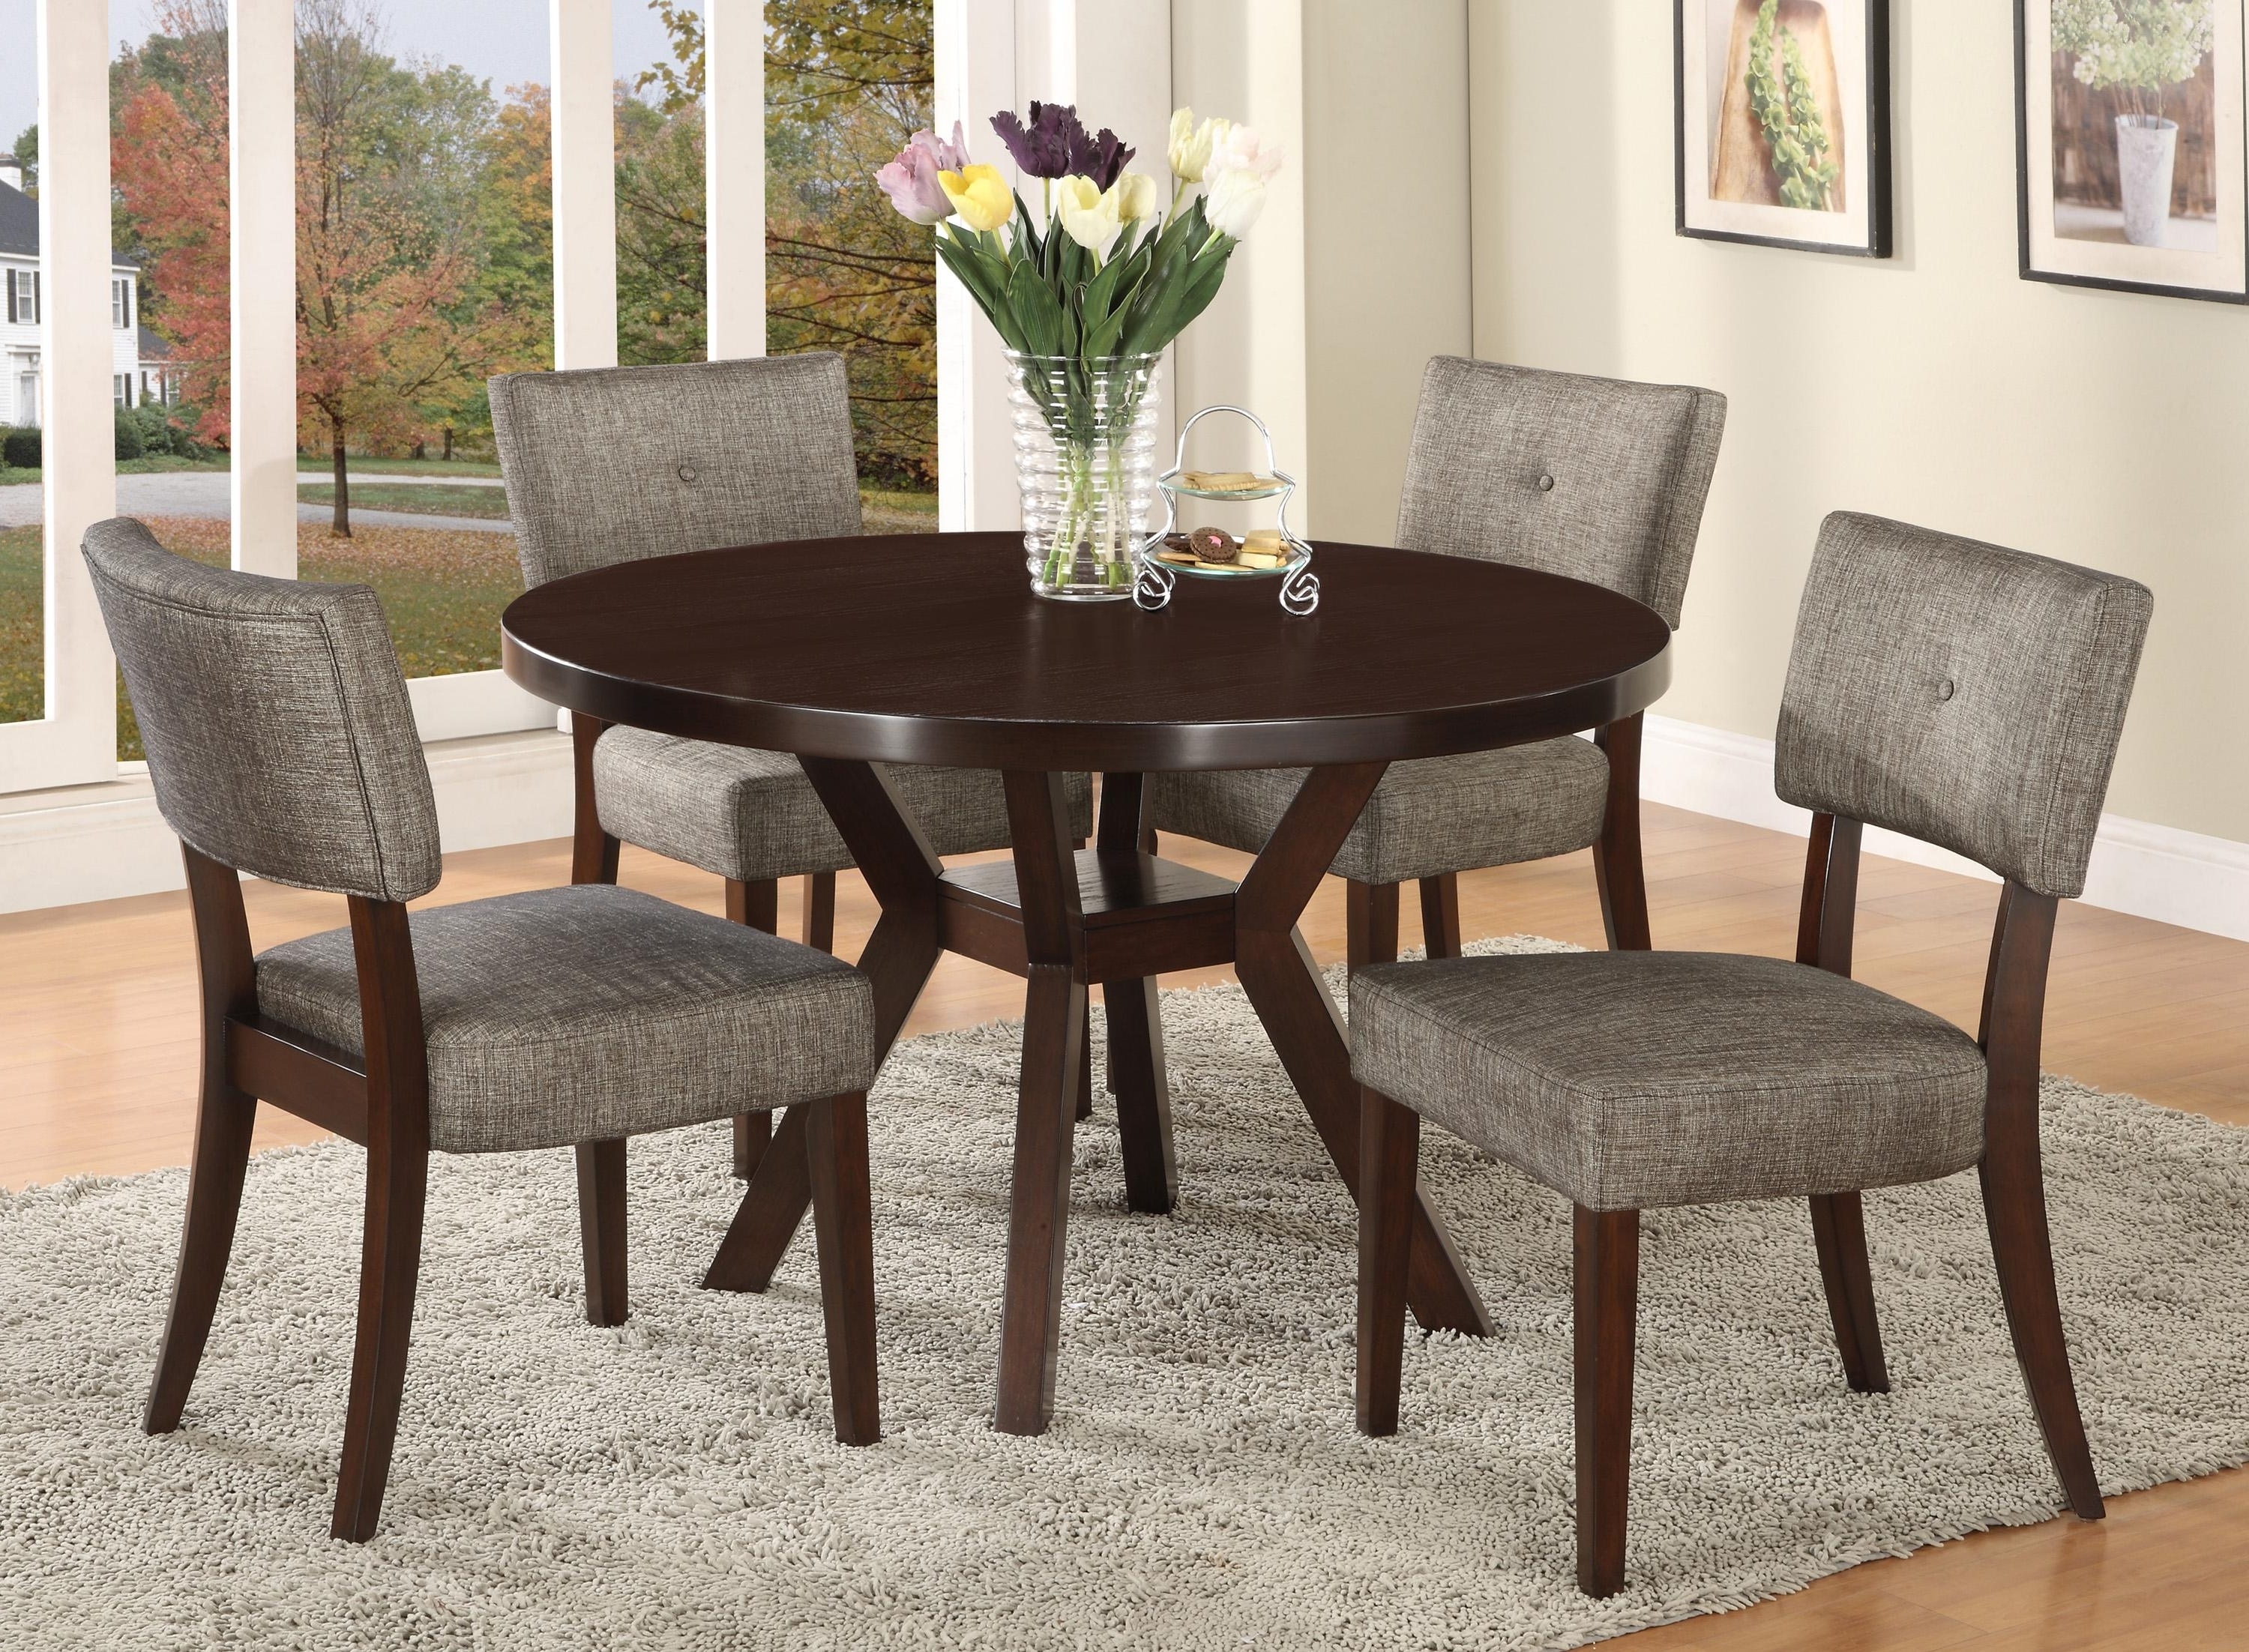 Dunk & Bright Pertaining To Dining Sets (Gallery 11 of 25)